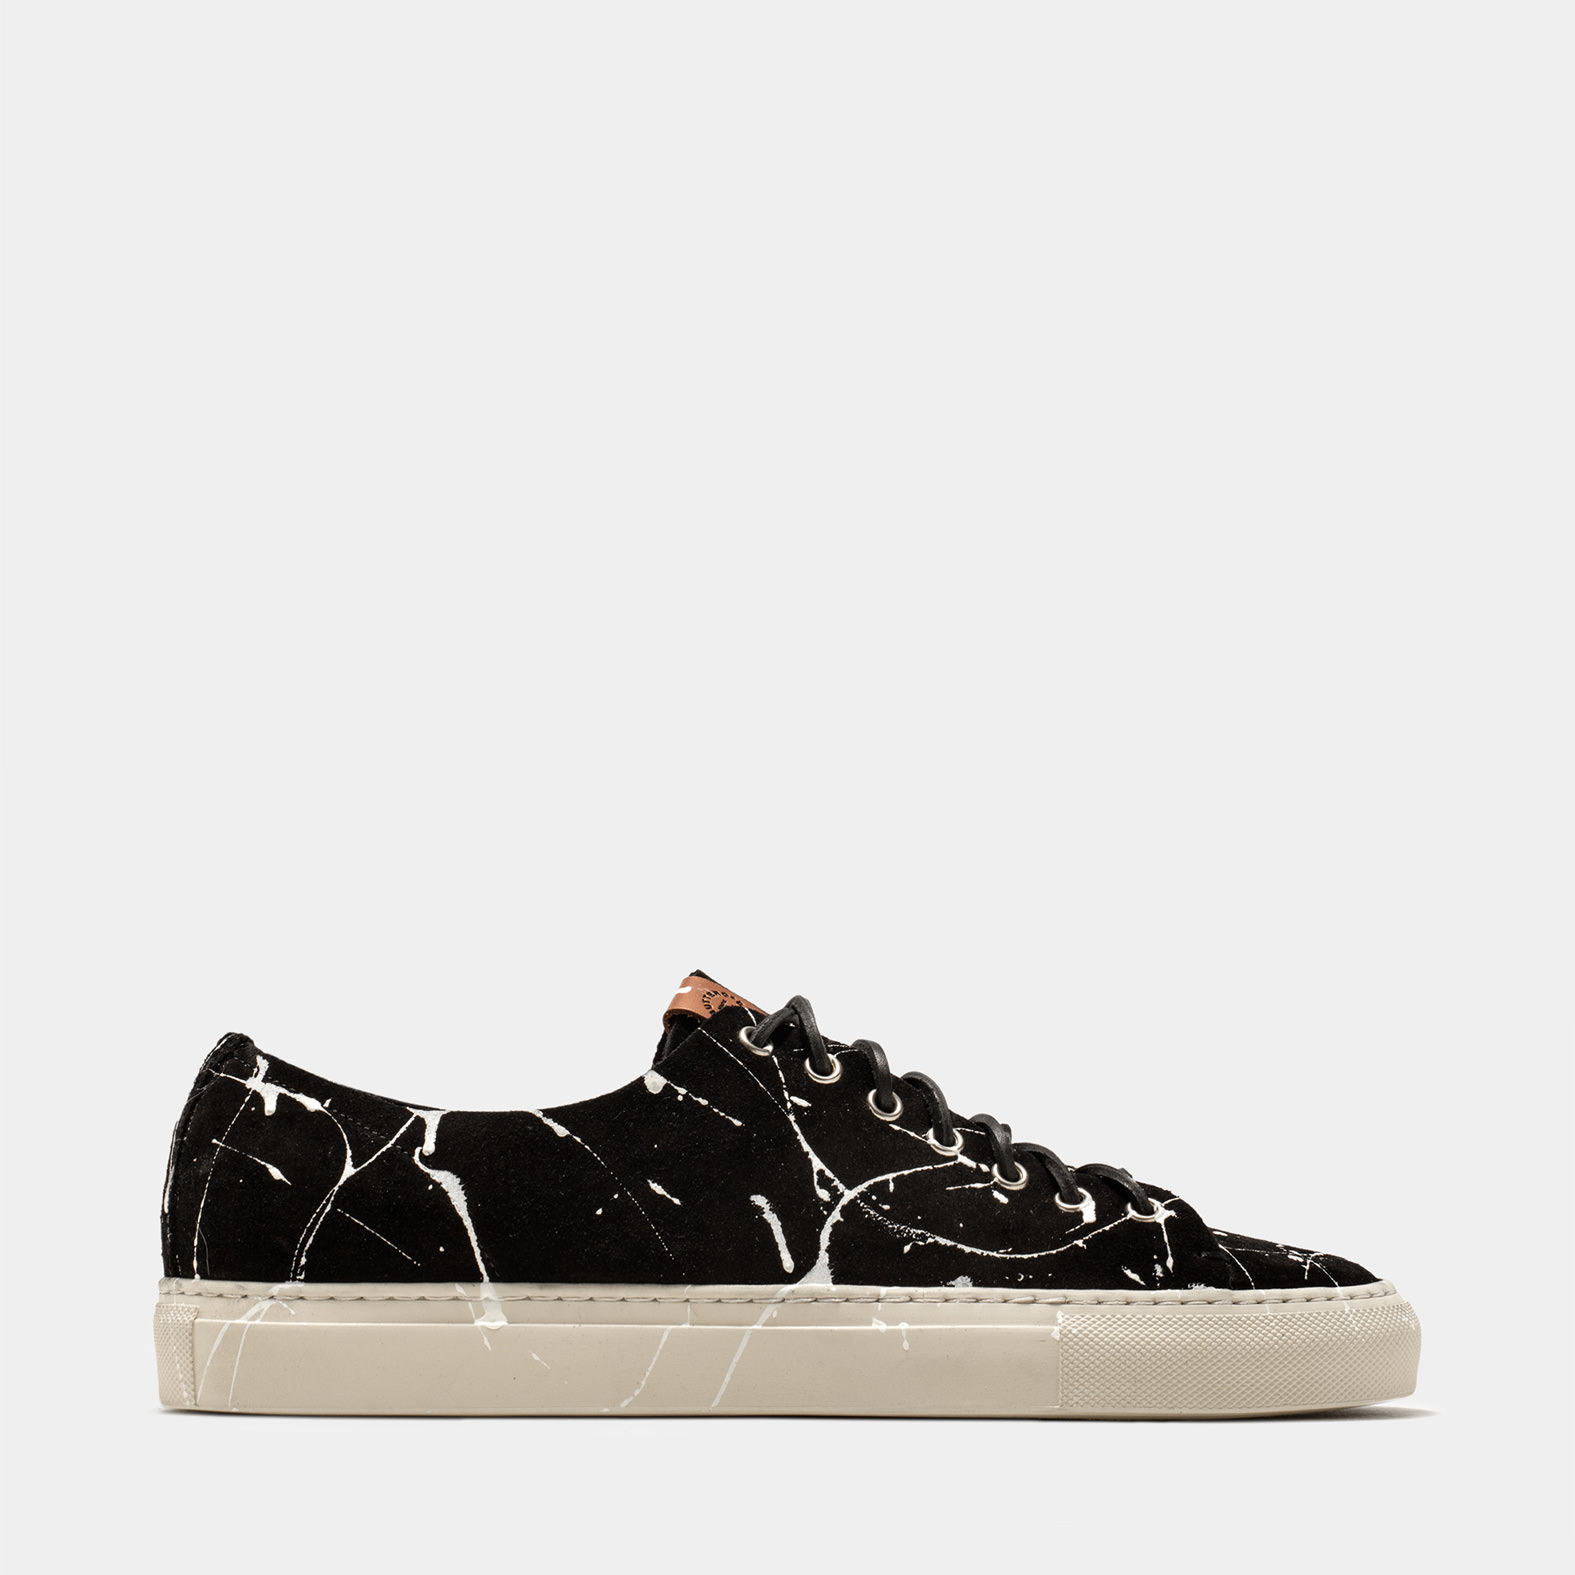 BUTTERO: BLACK SUEDE TANINO LOW TOP SNEAKERS WITH PAINT SPLASHES